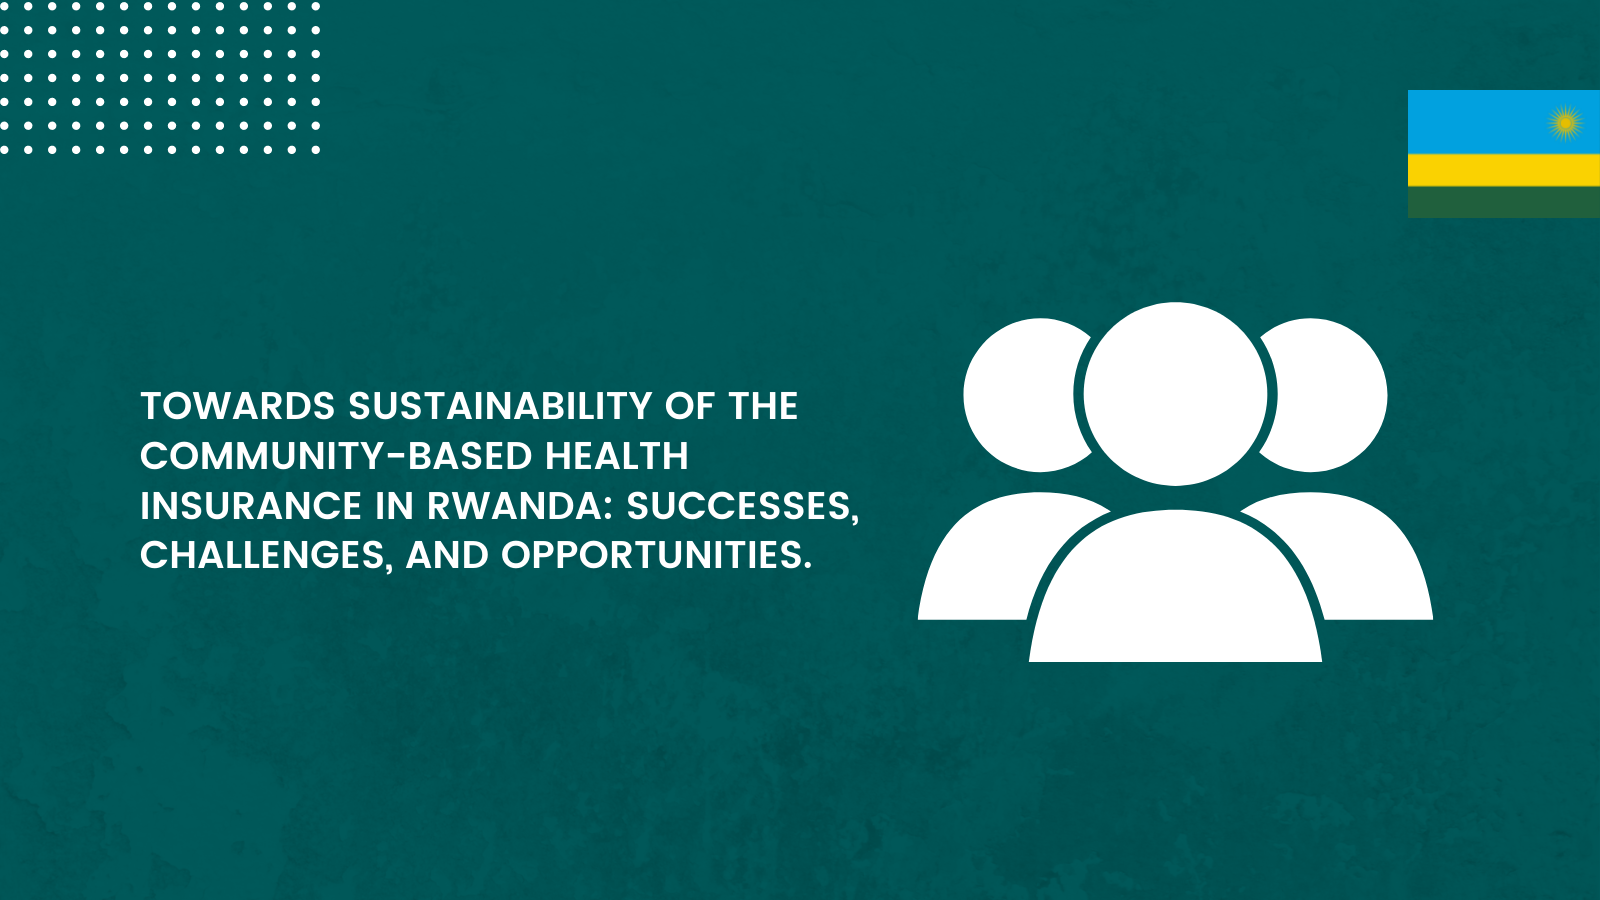 Towards Sustainability Of The Community-Based Health Insurance In Rwanda: Successes, Challenges, And Opportunities